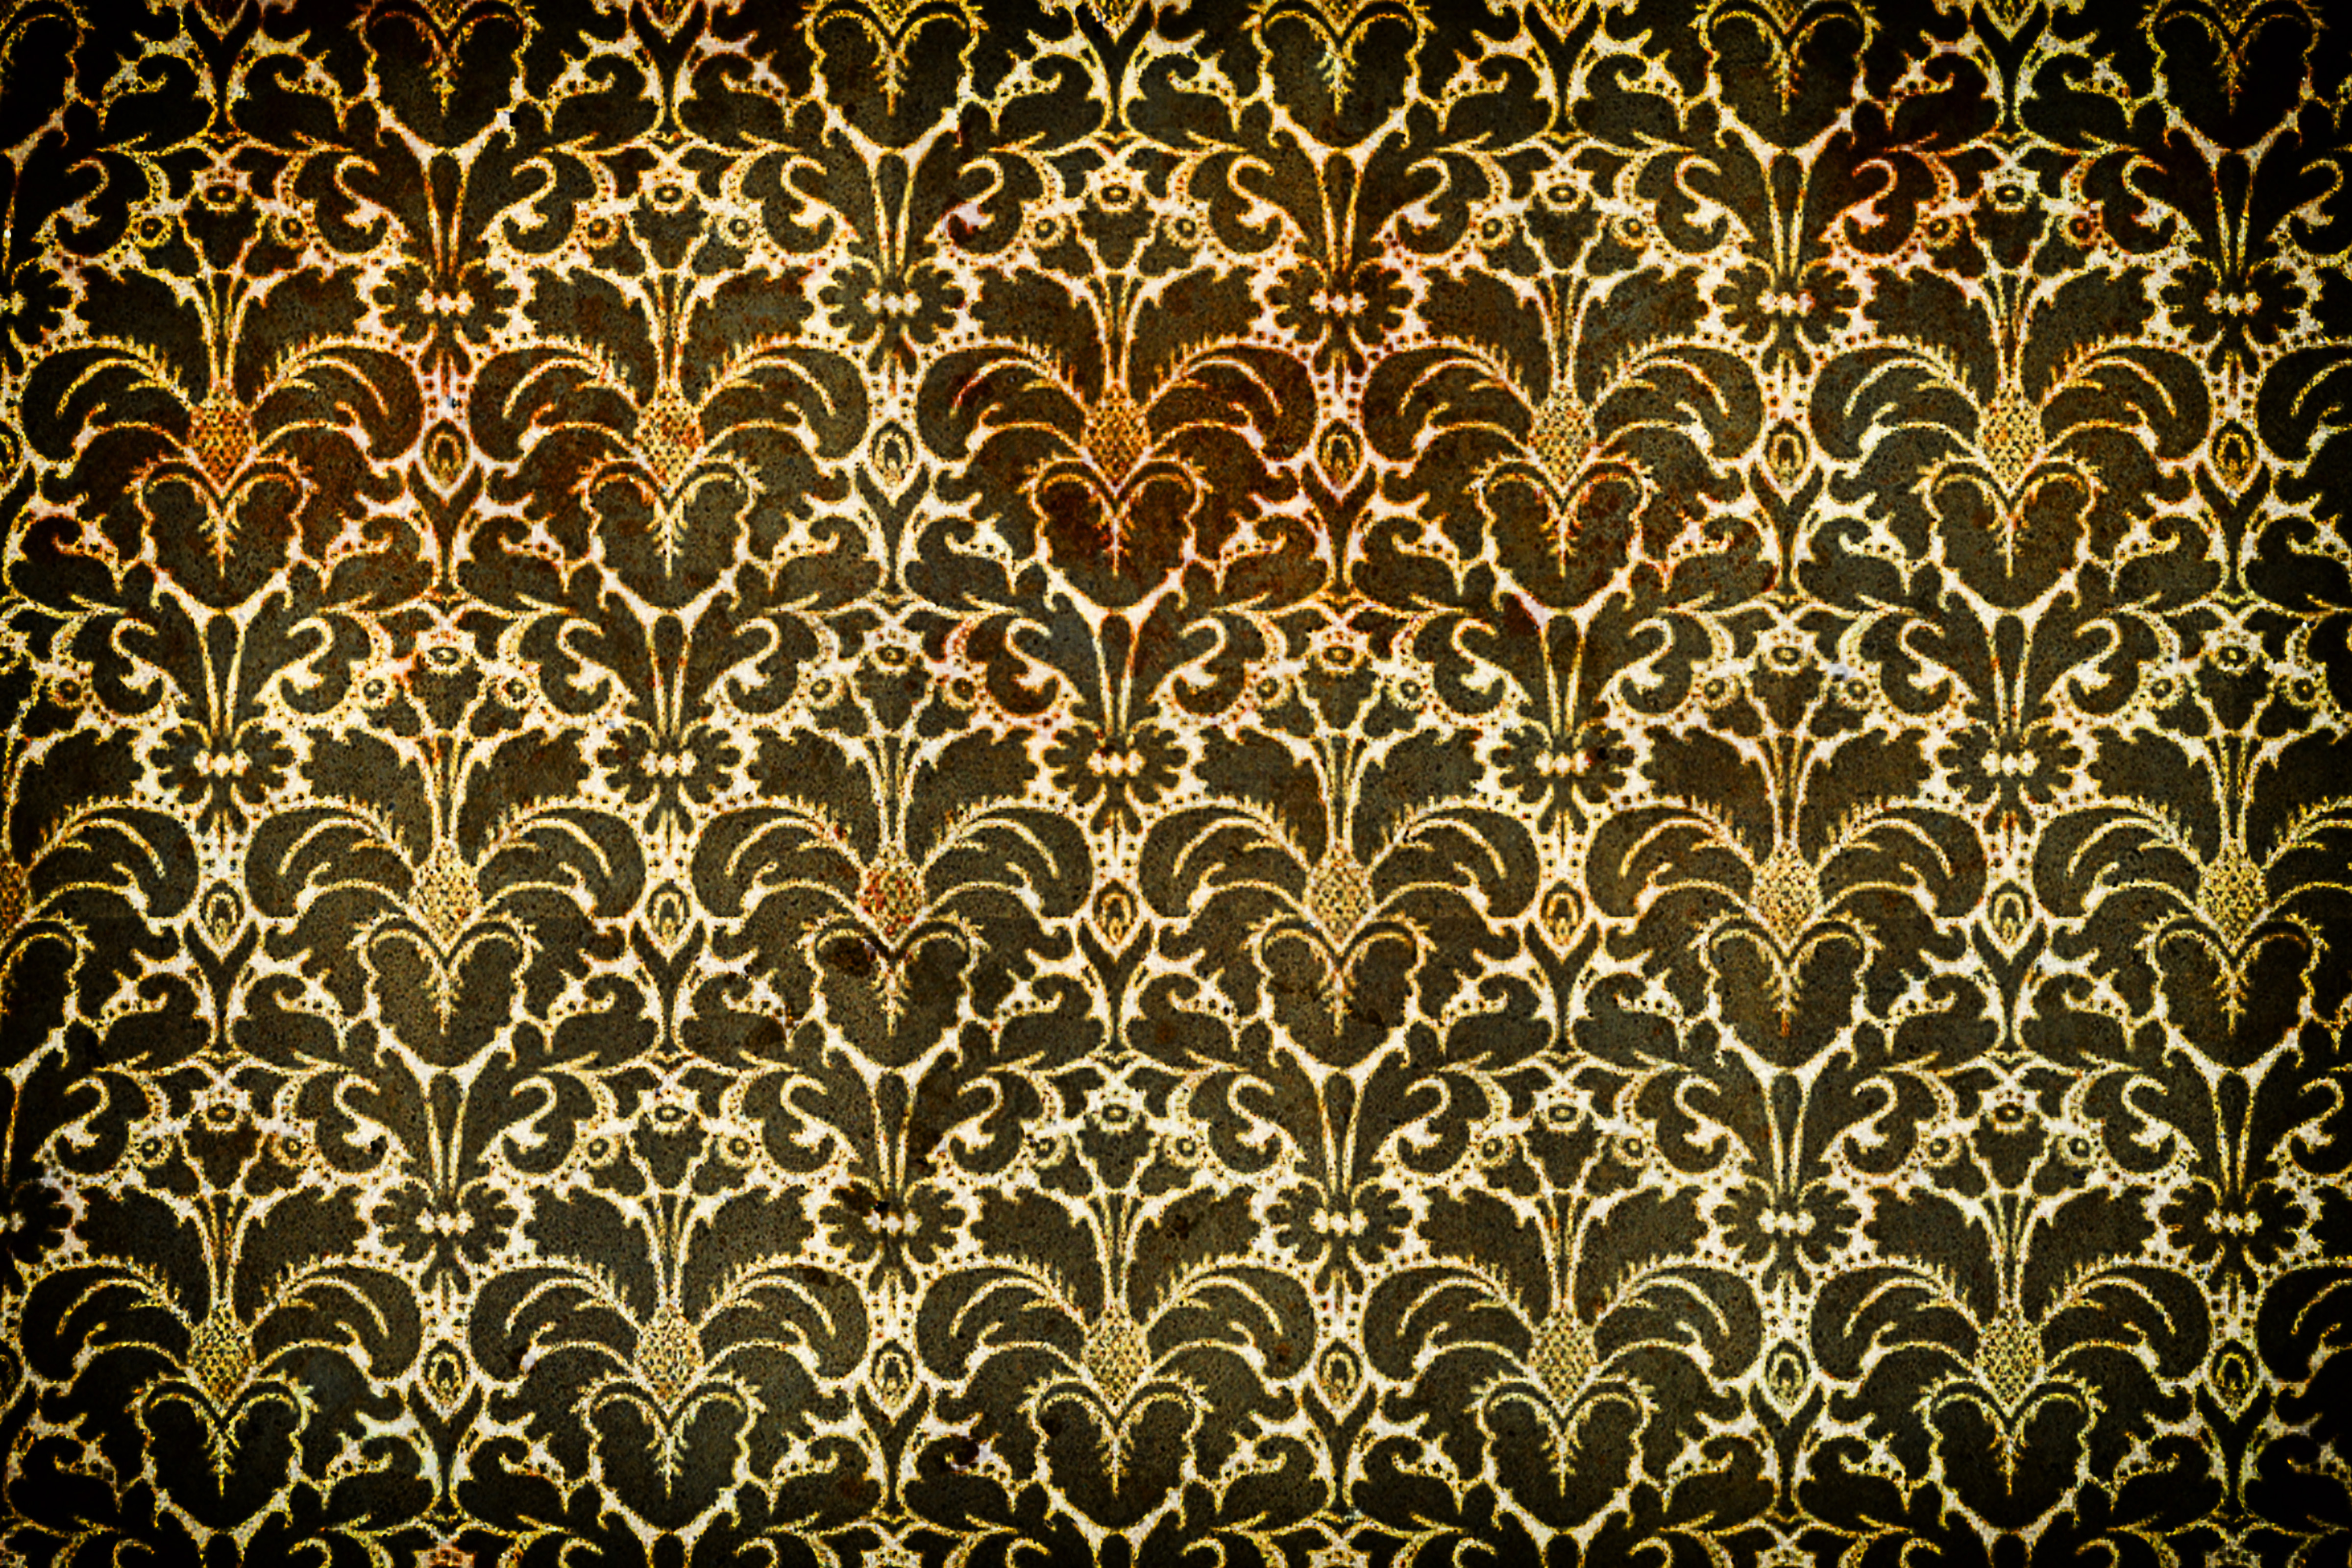 10 high resolution Grungy French Wallpaper textures using patterns 4800x3200